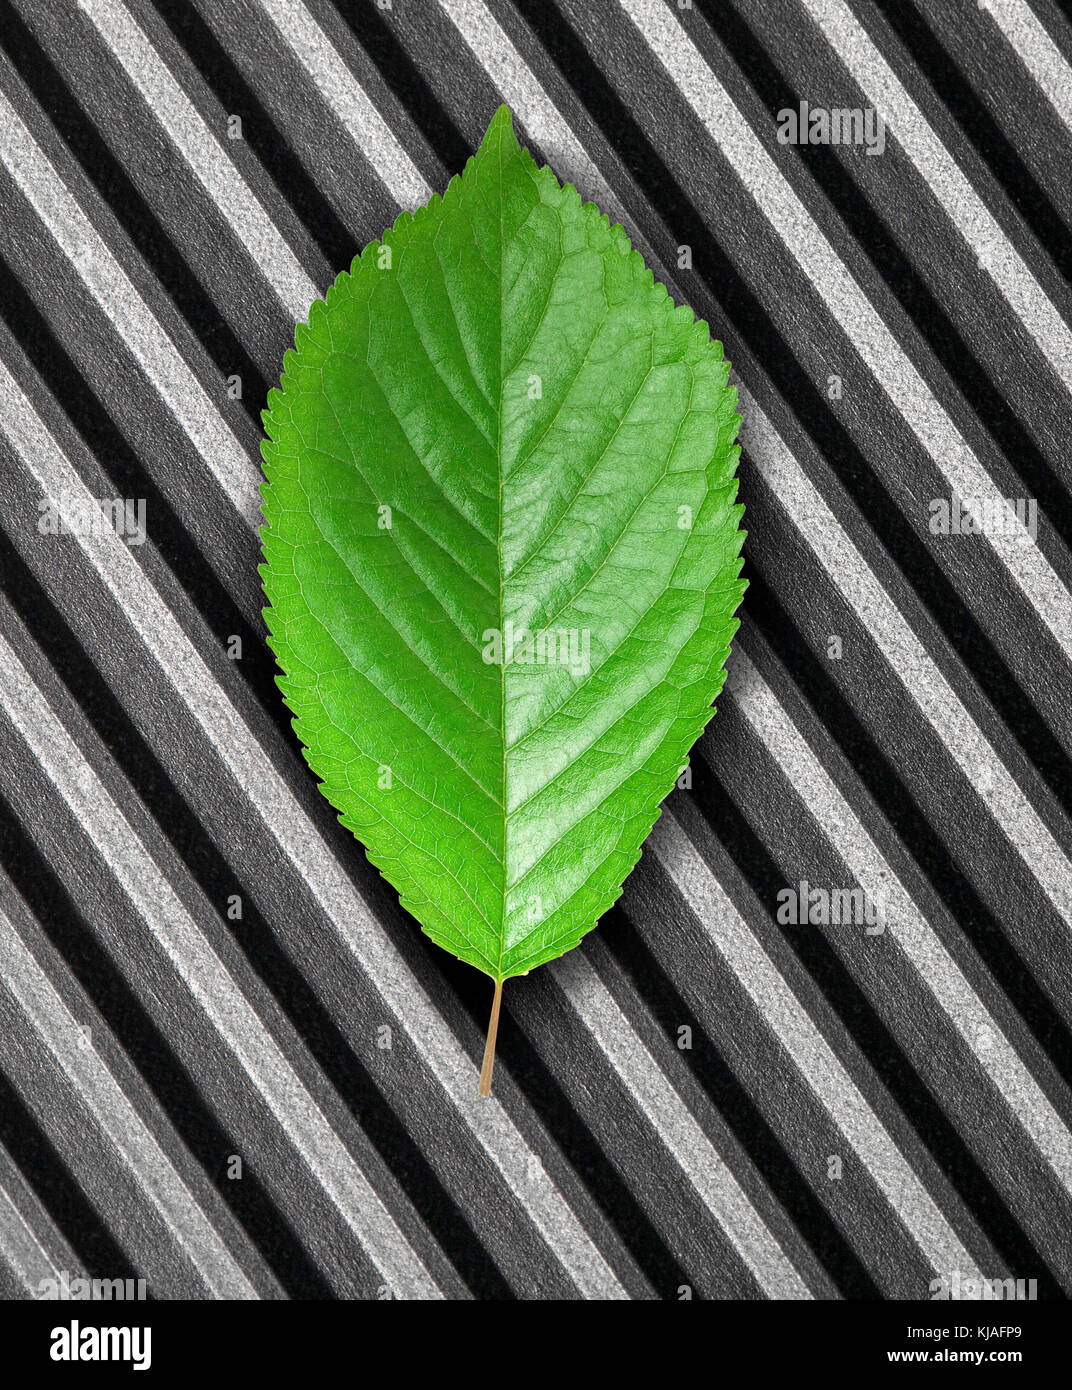 Green leaf lying in the rays of light on scratched metal. Top view. Modern technology and nature compatible. New - Stock Image